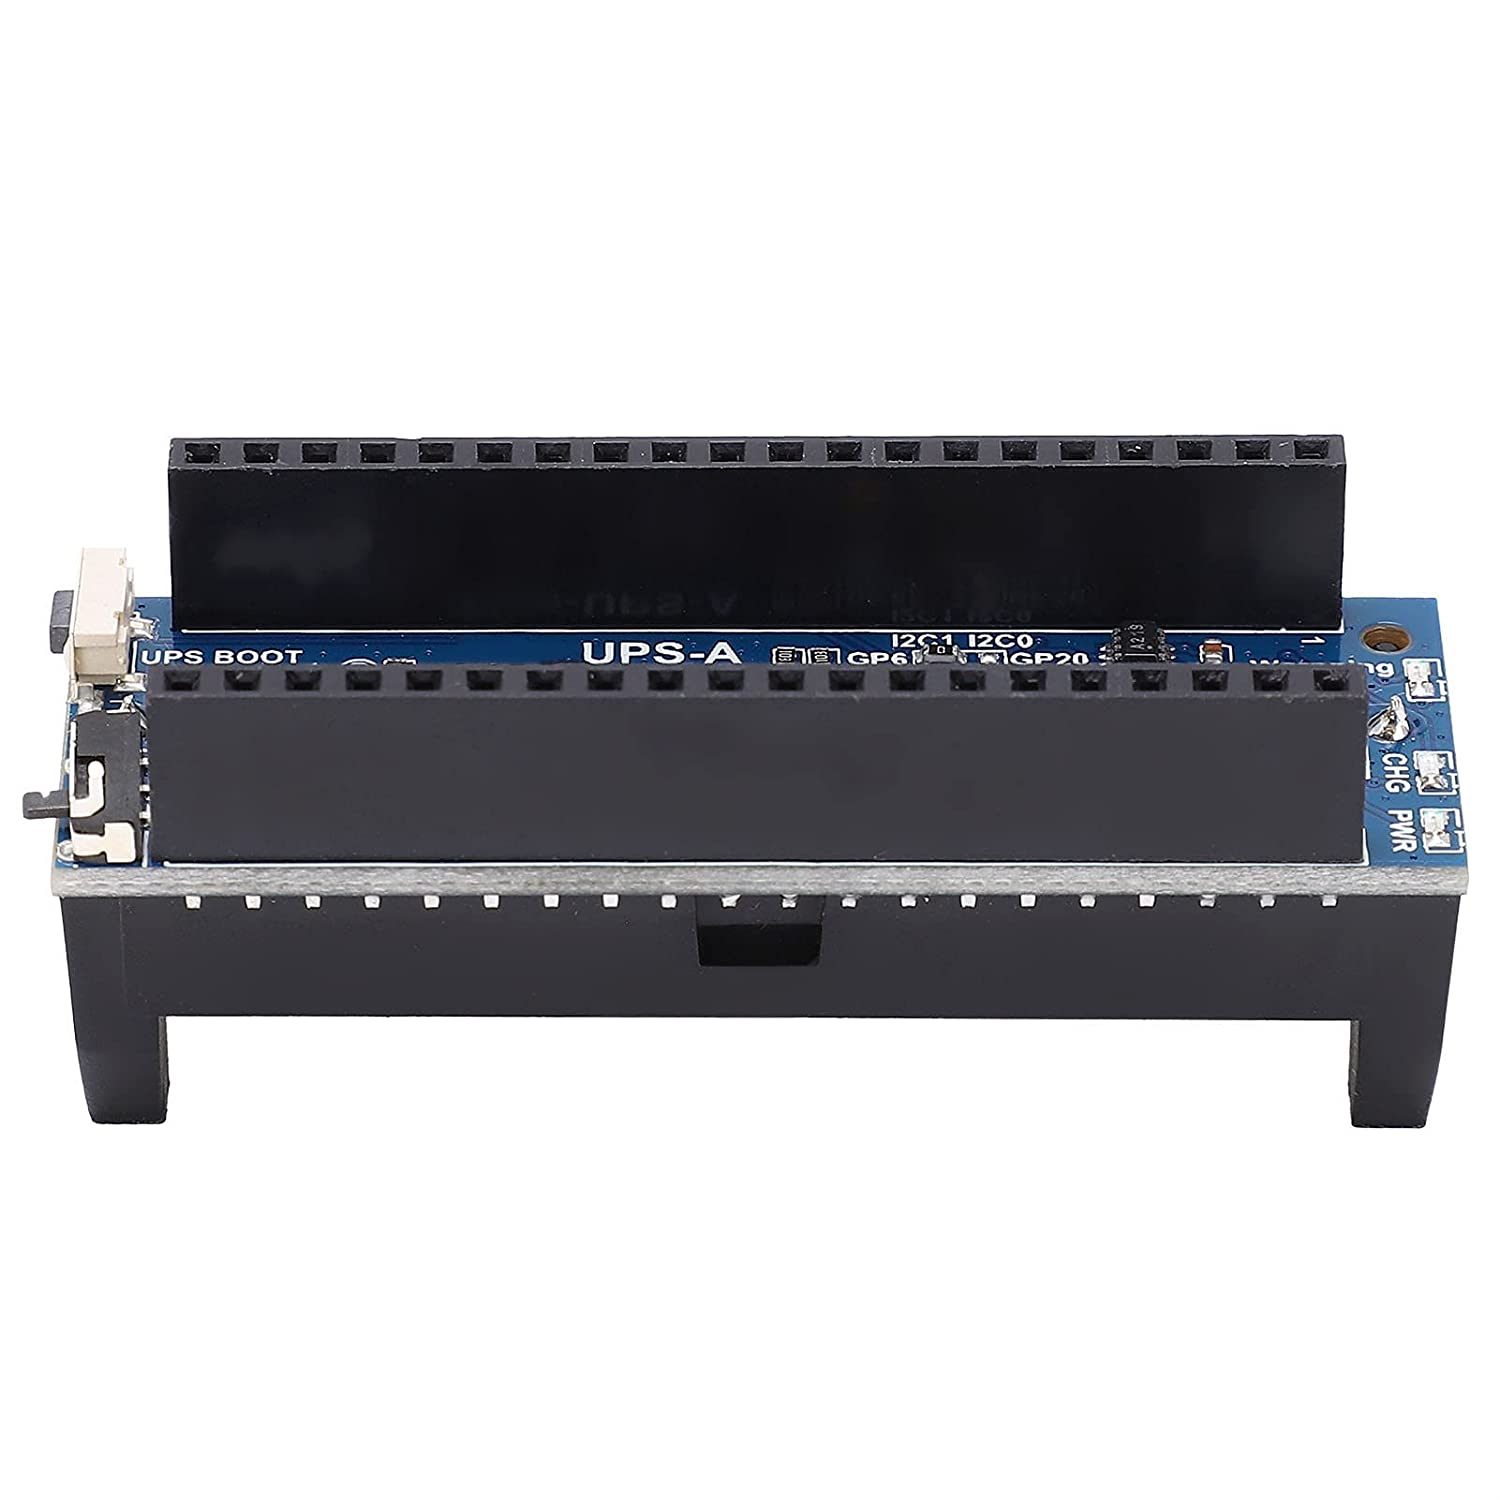 UPS Expansion Board Battery 14500mAh Lithium Battery Holder Uninterruptible Power Supply for Raspberry Pi Pico‑UPS‑A